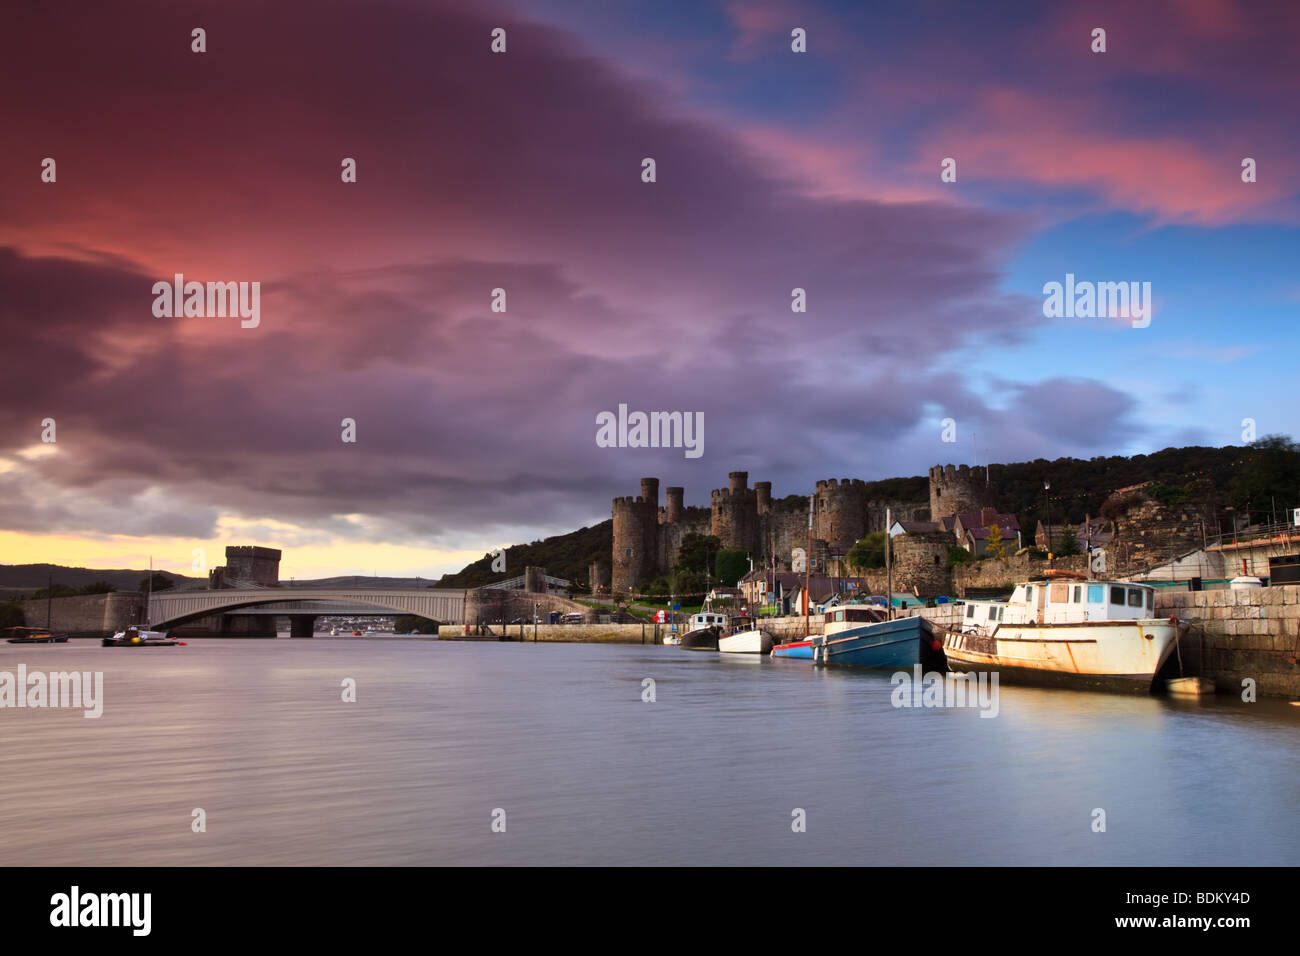 Early morning sunrise over Conwy castle in North Wales. - Stock Image